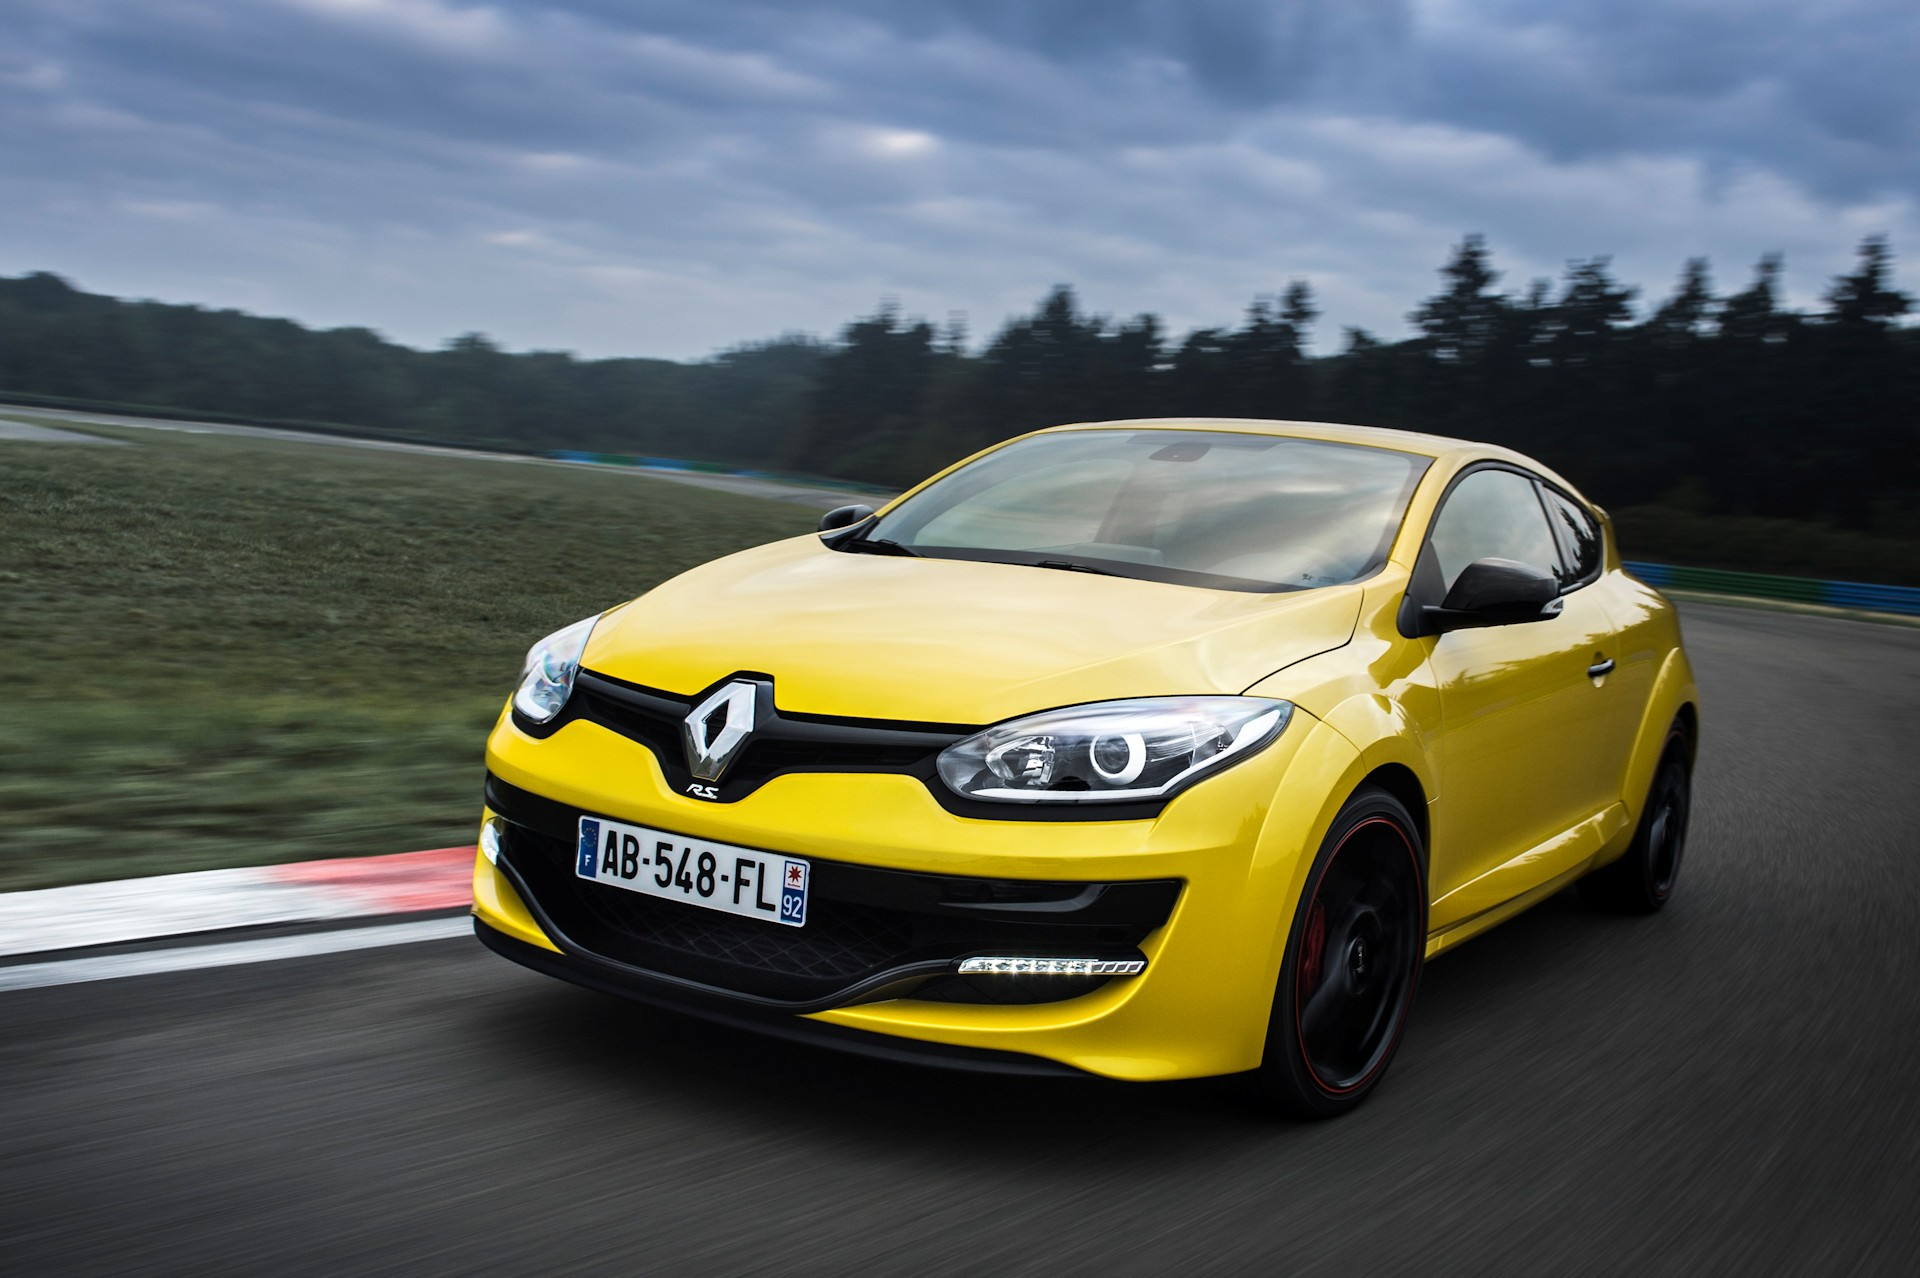 2014 Mégane Renaultsport 265 – Video, Gallery & Stats